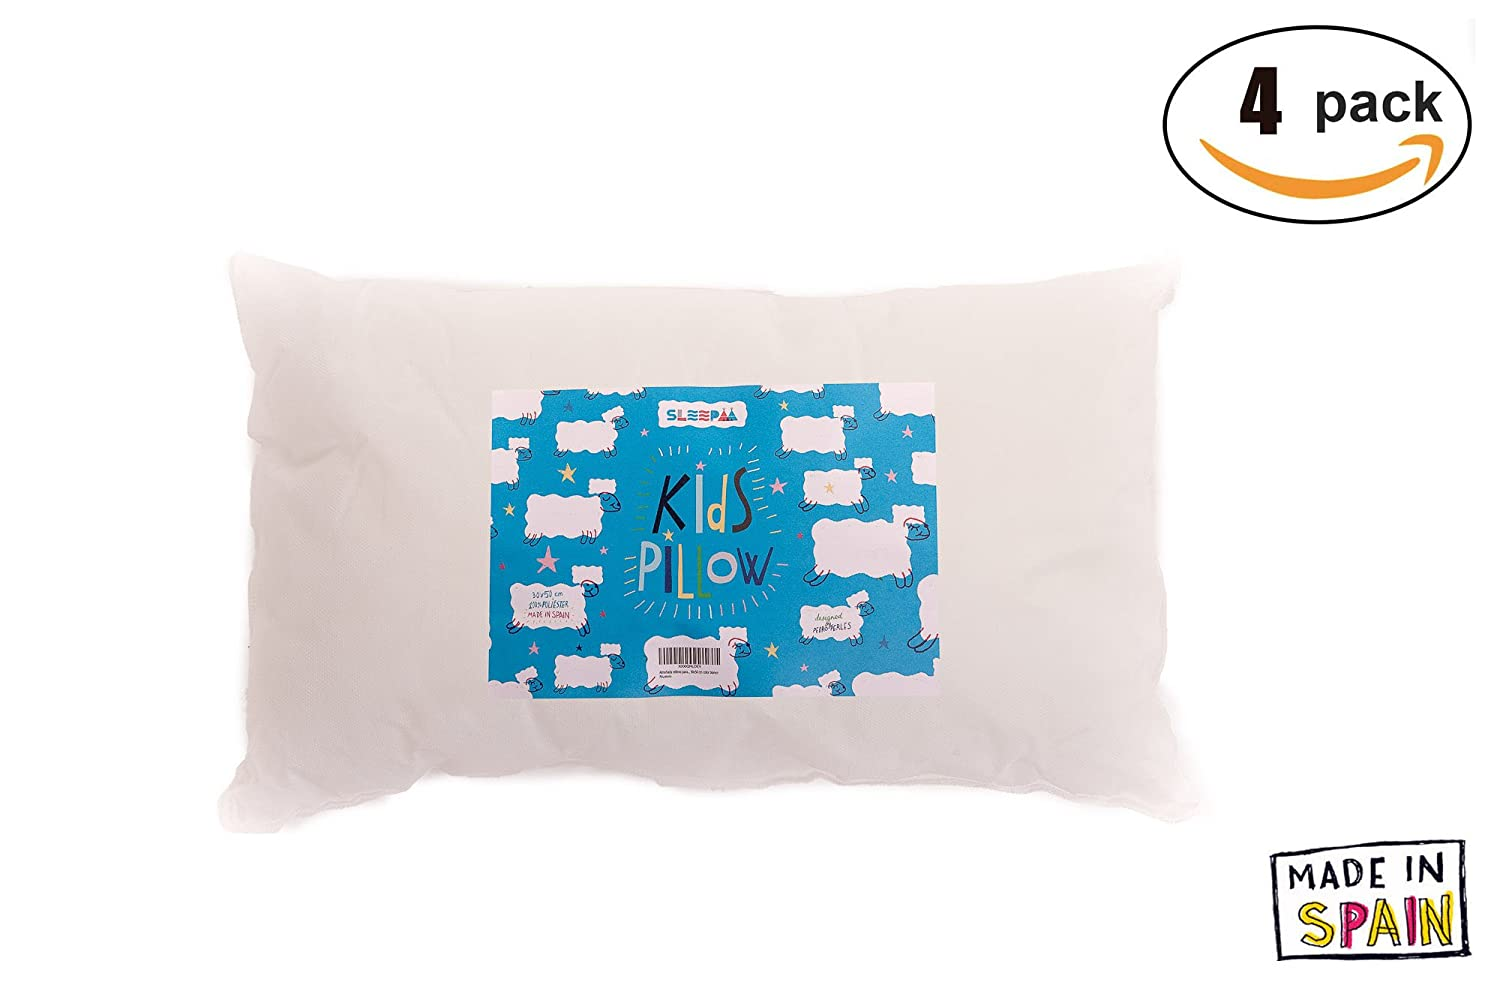 Cushion Pad 30x50 cm Filling for Crib Washable Breathable antimite White Made in Spain (1 Single Unit) SLEEPAA